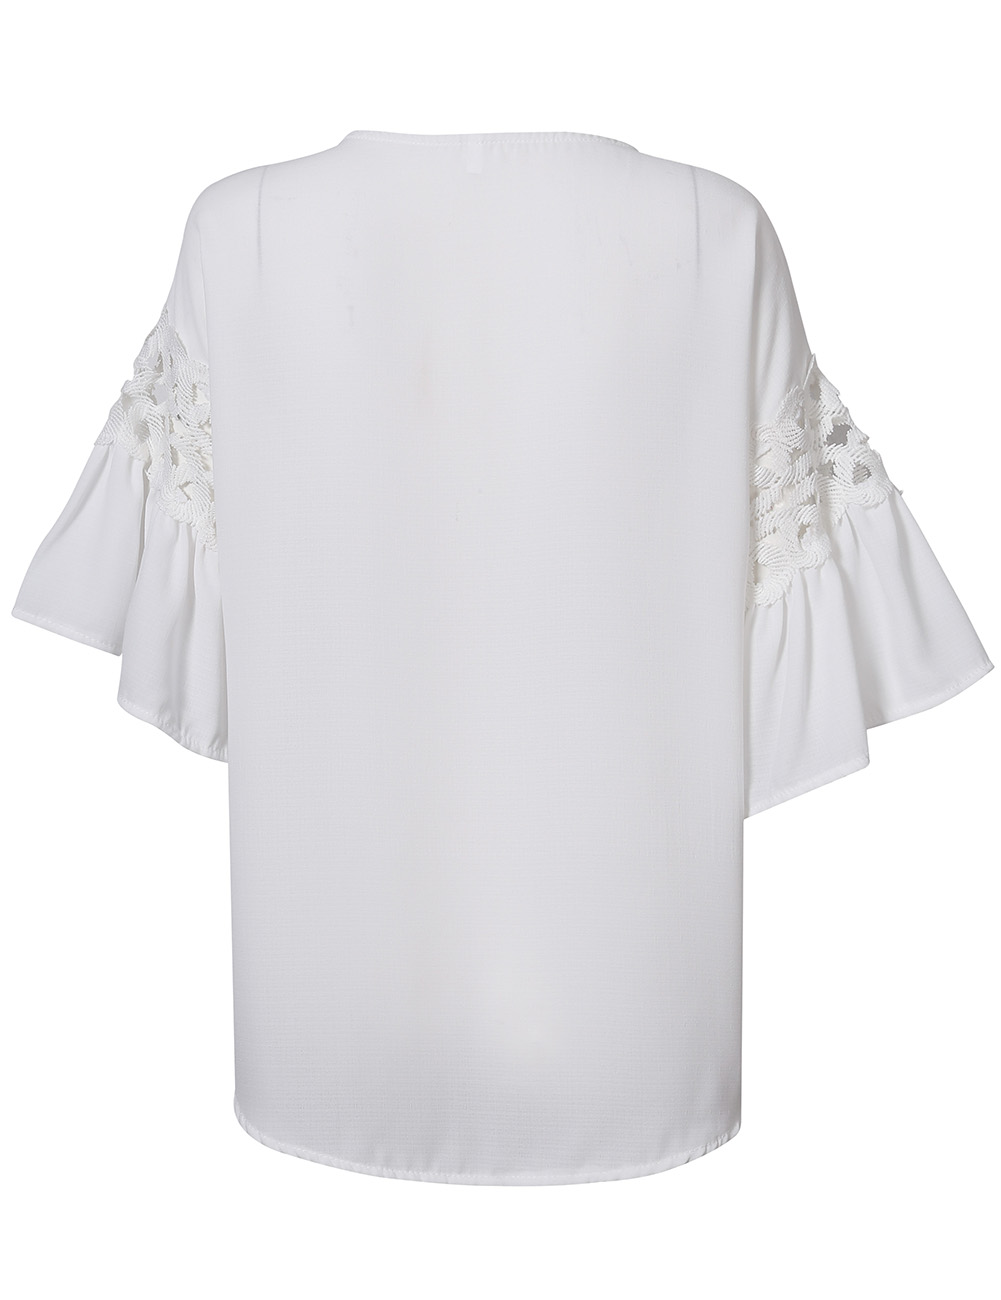 YesFashion Womens' Sweet Hollow Lace Trumpet Half Sleeve Loose Shirt Top Blouse